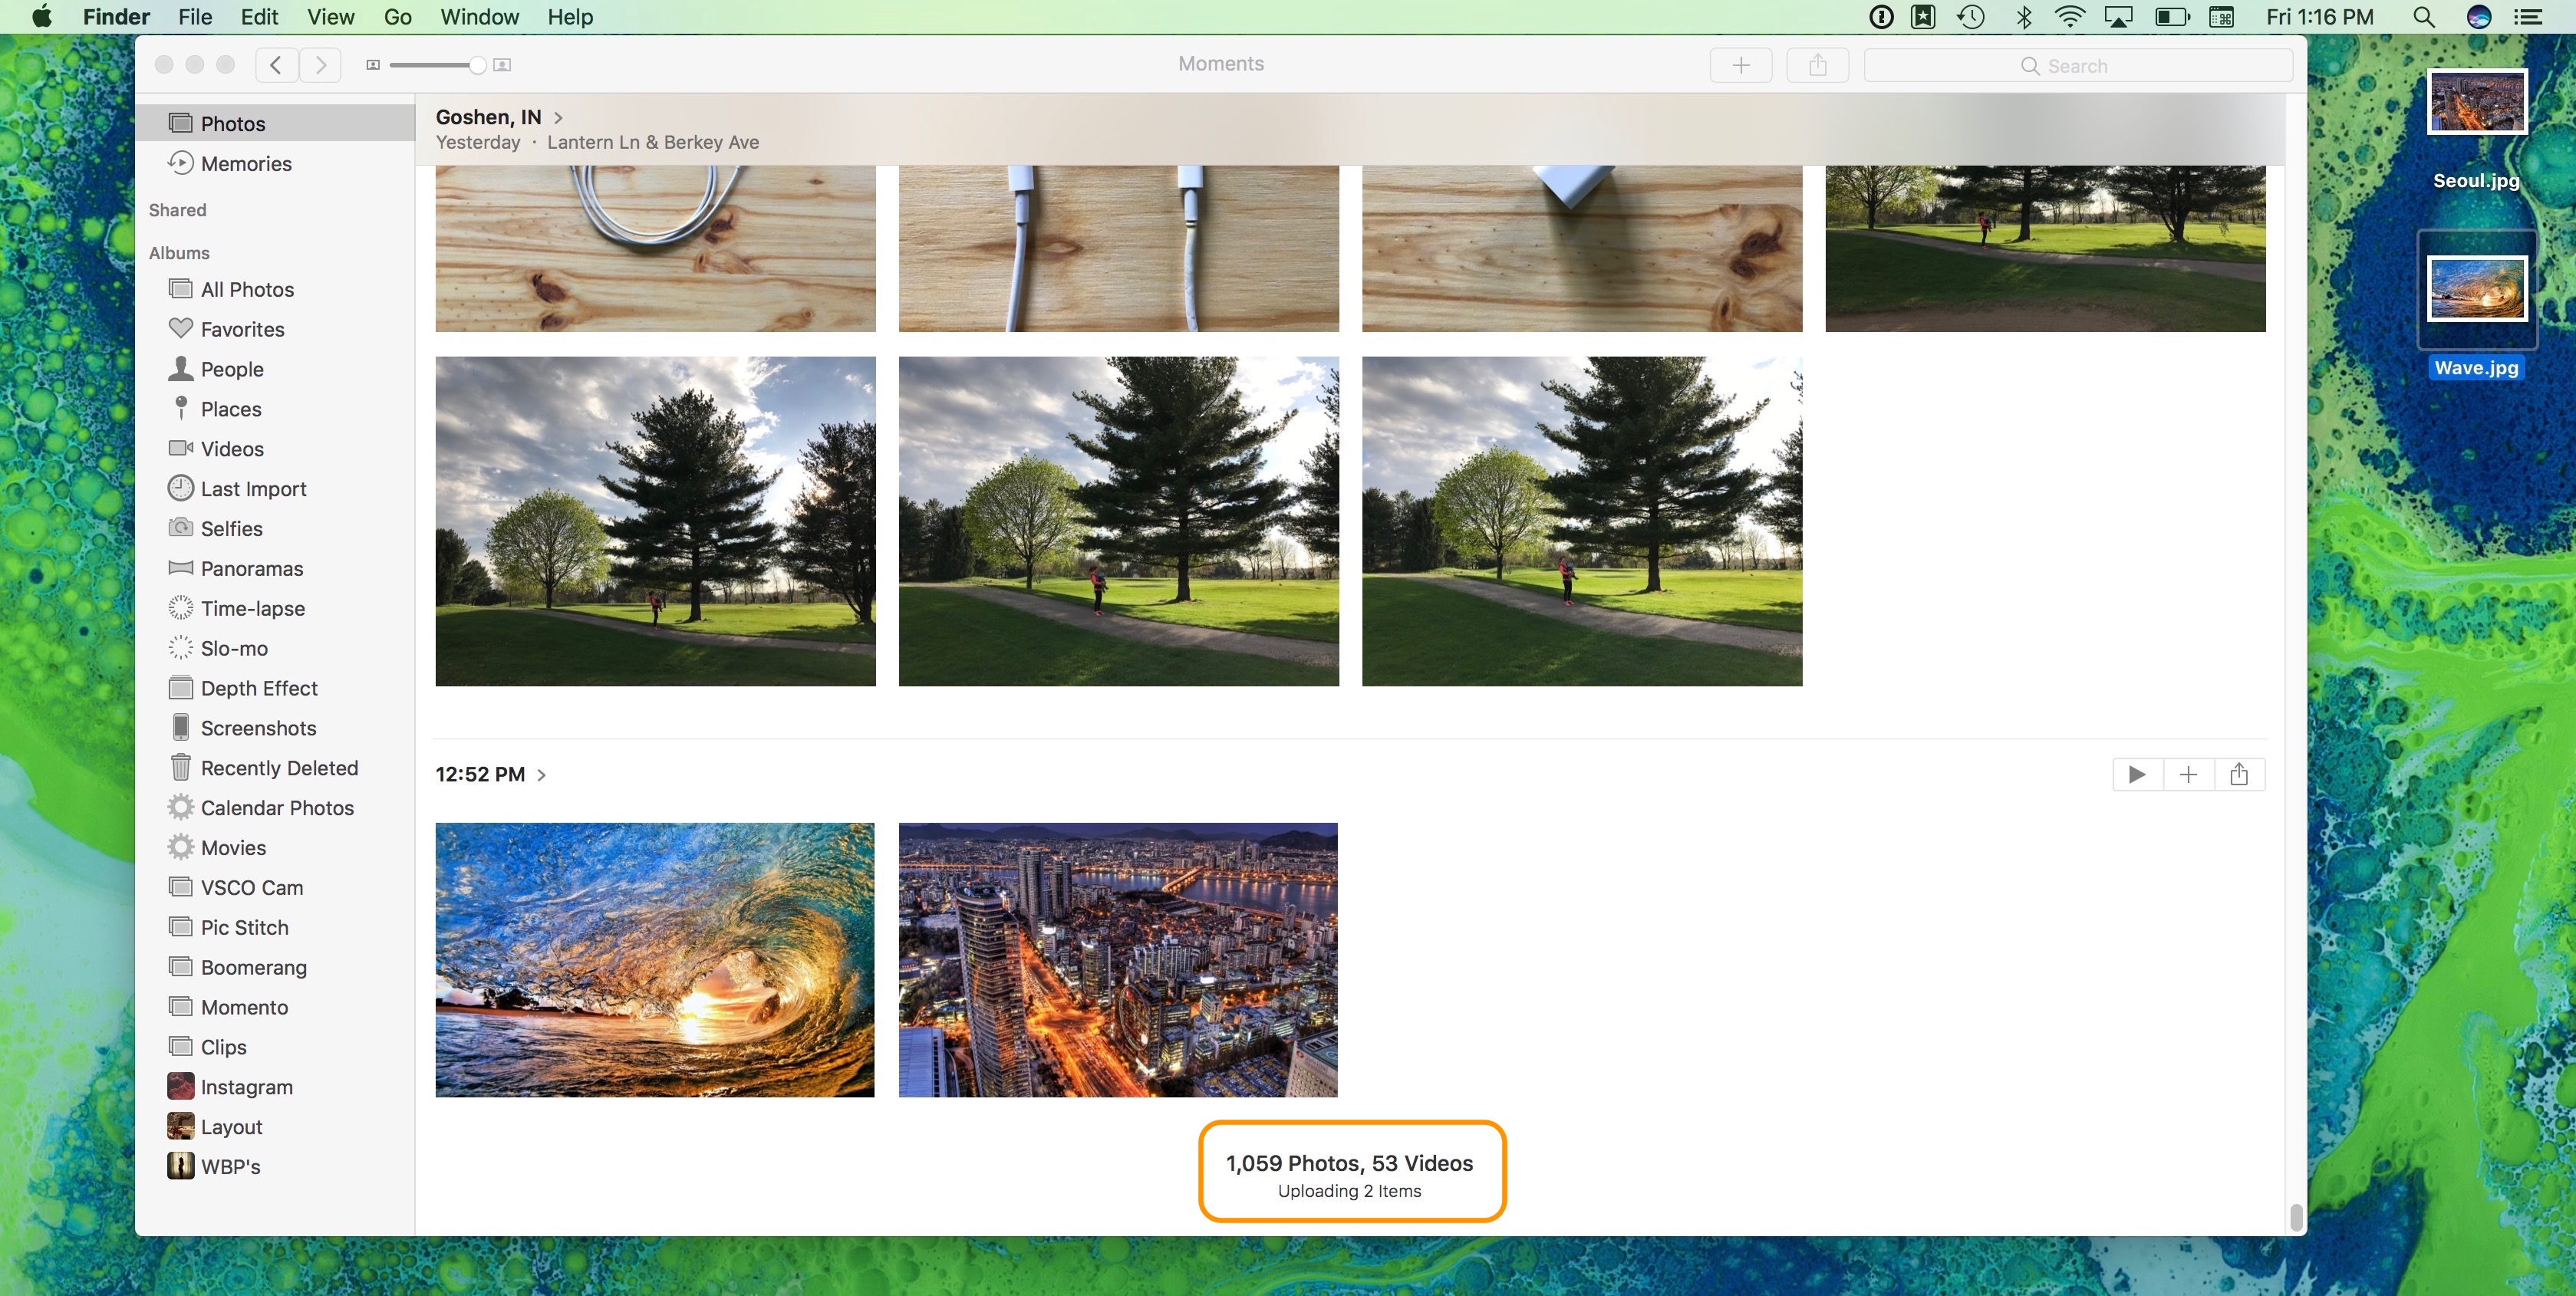 How to import photos to icloud photo library